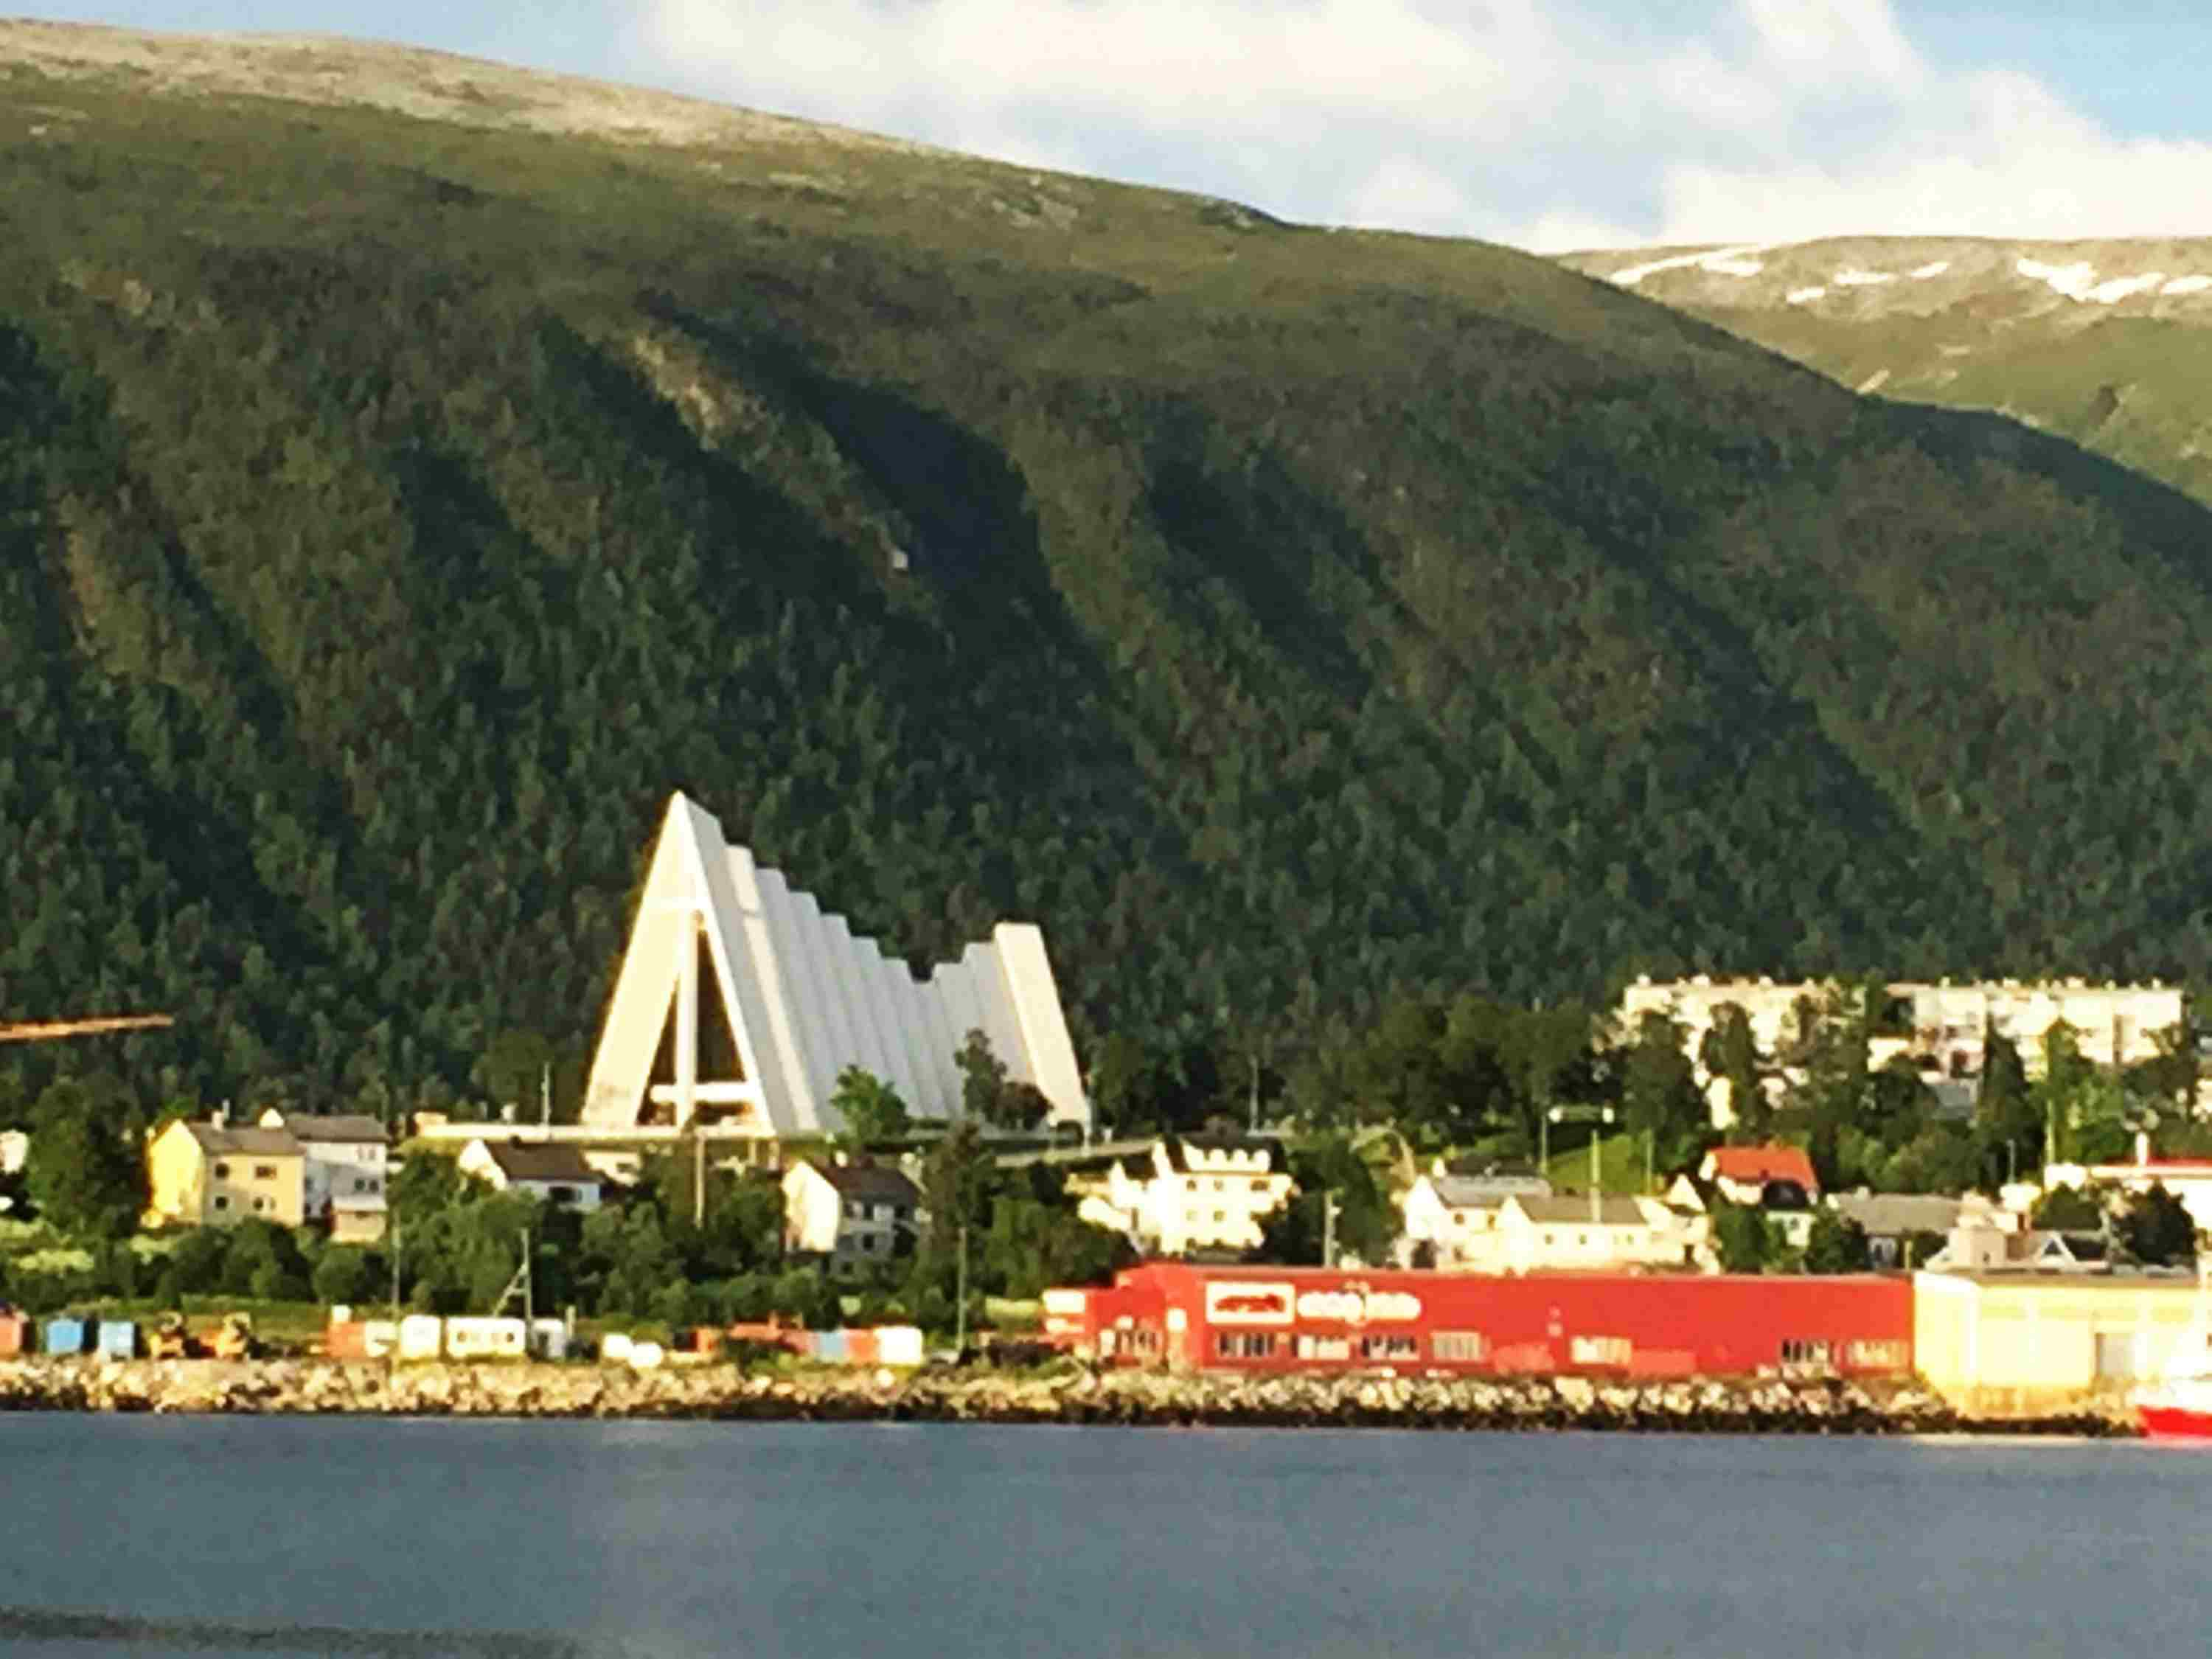 Tall, white cathedral next to water and green mountains